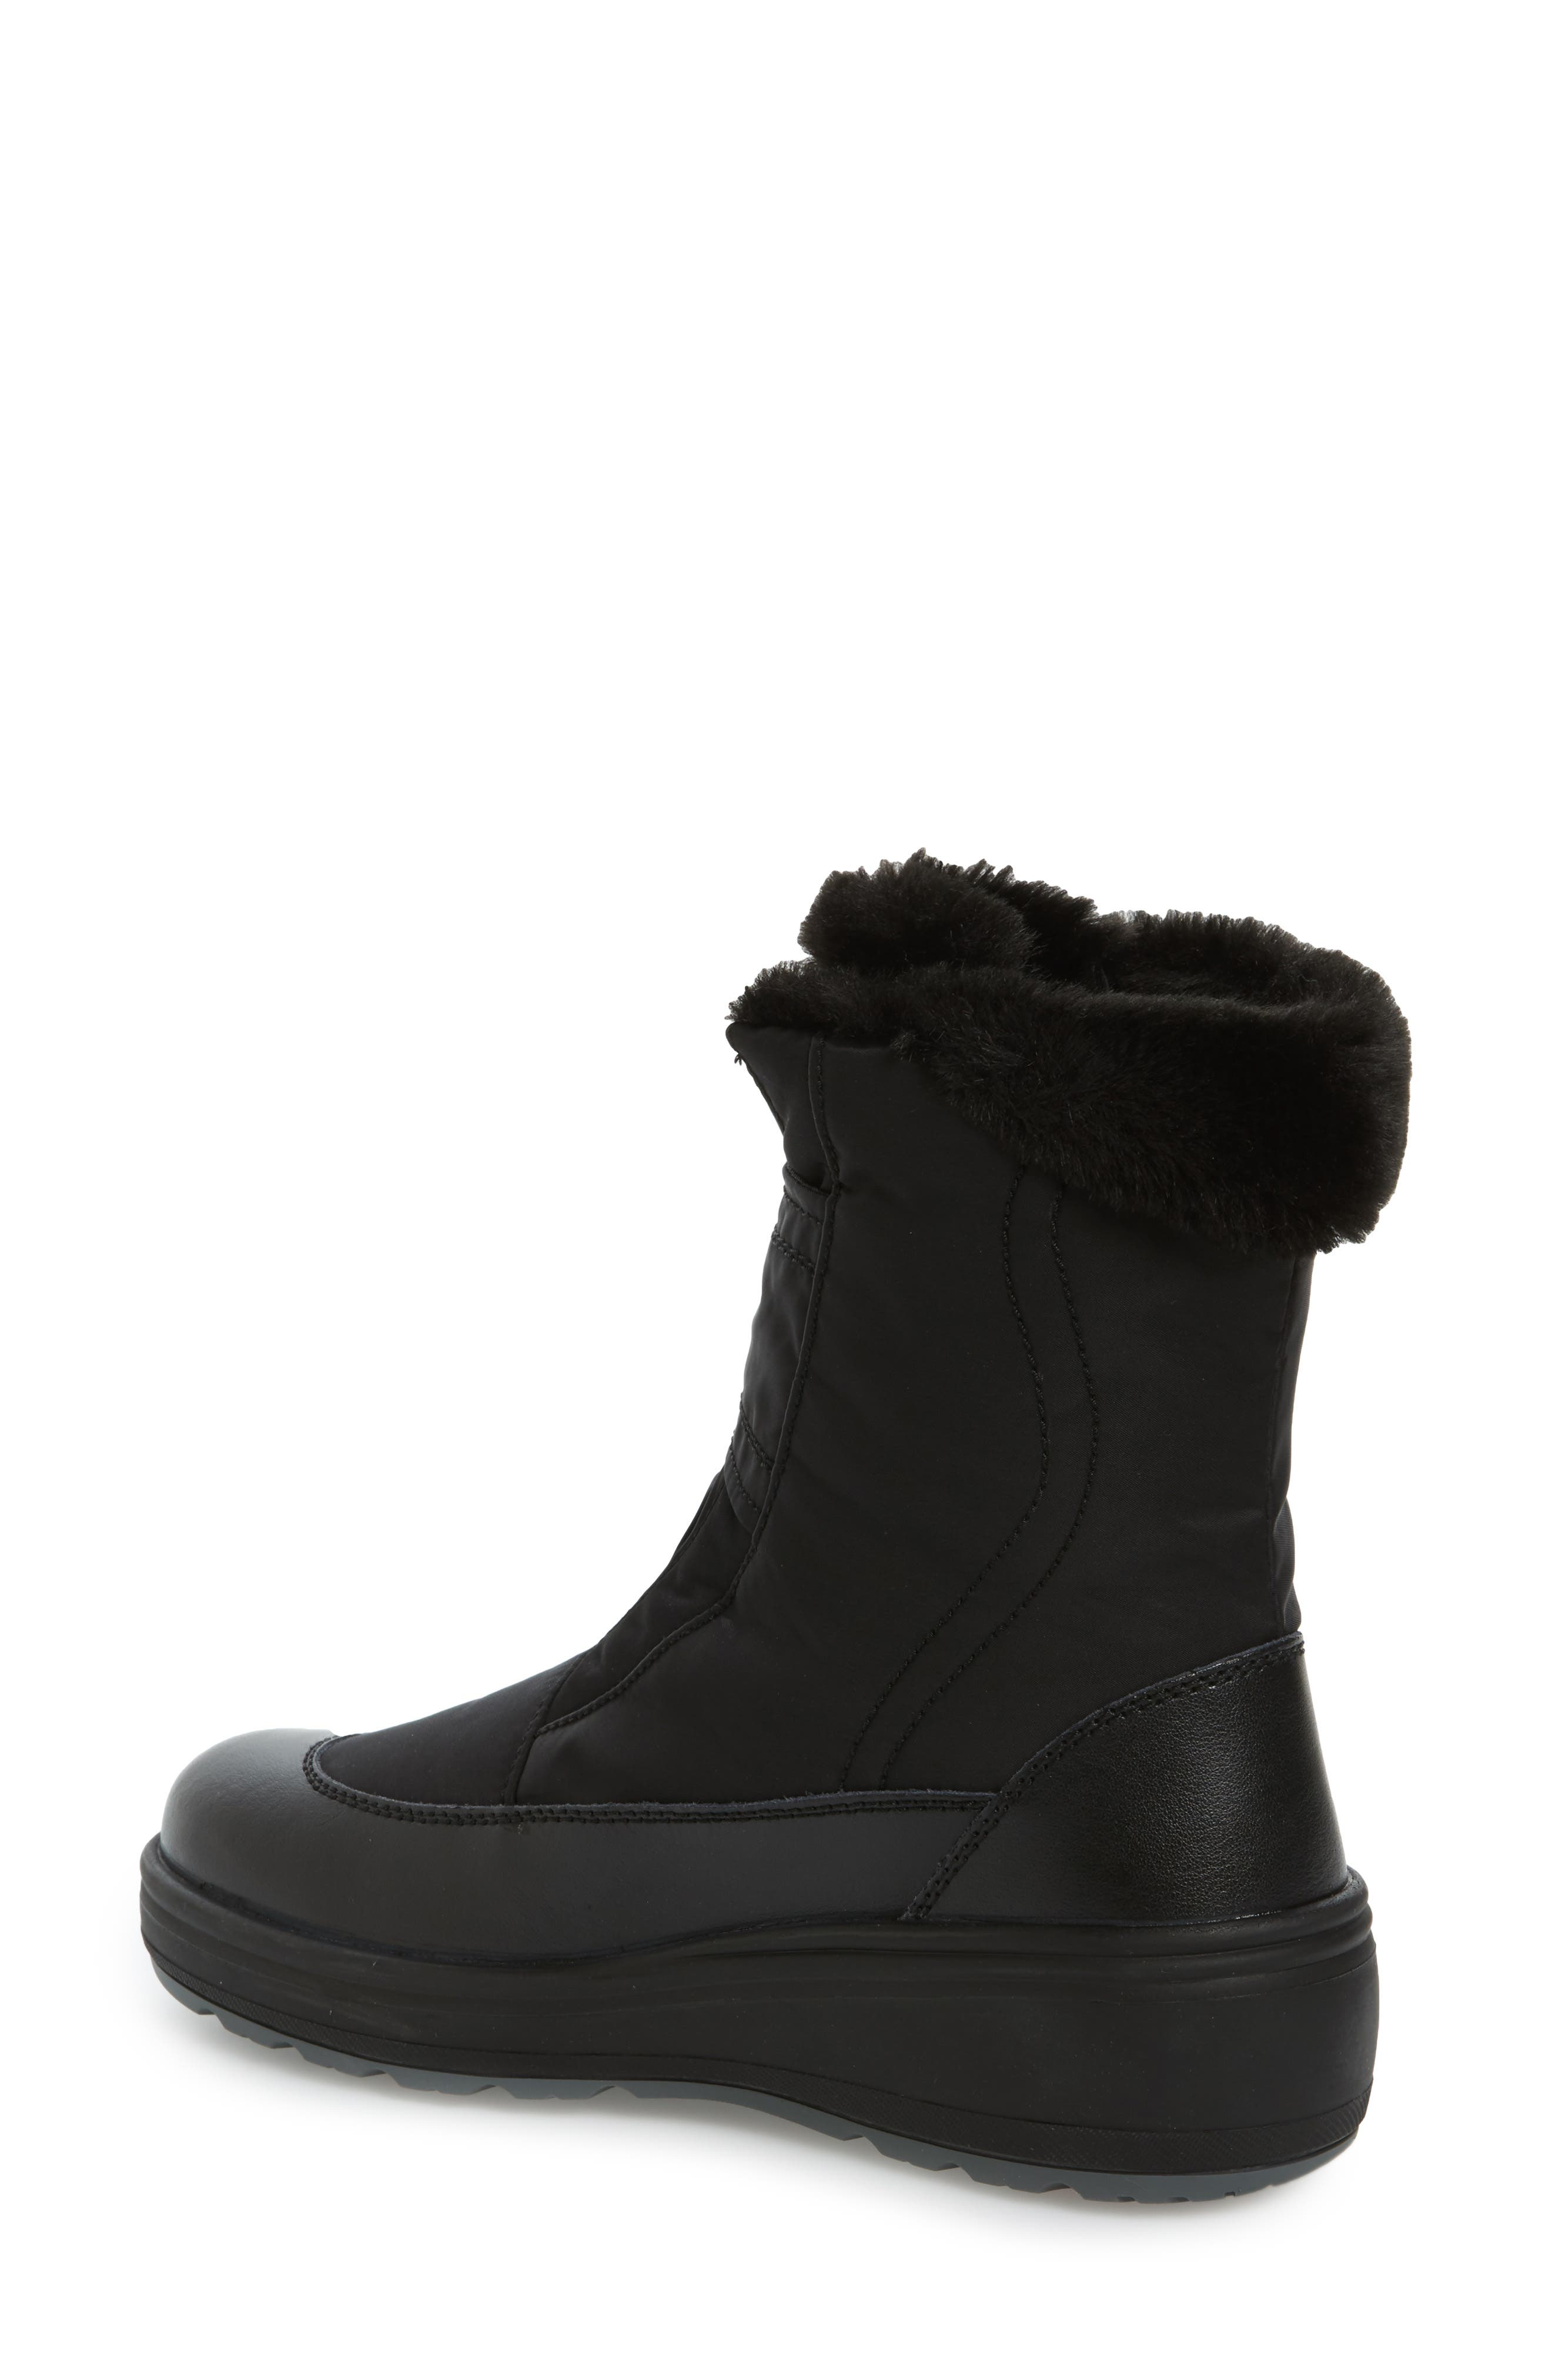 Samara Waterproof Insulated Boot with Faux Fur Lining,                             Alternate thumbnail 2, color,                             Black Leather